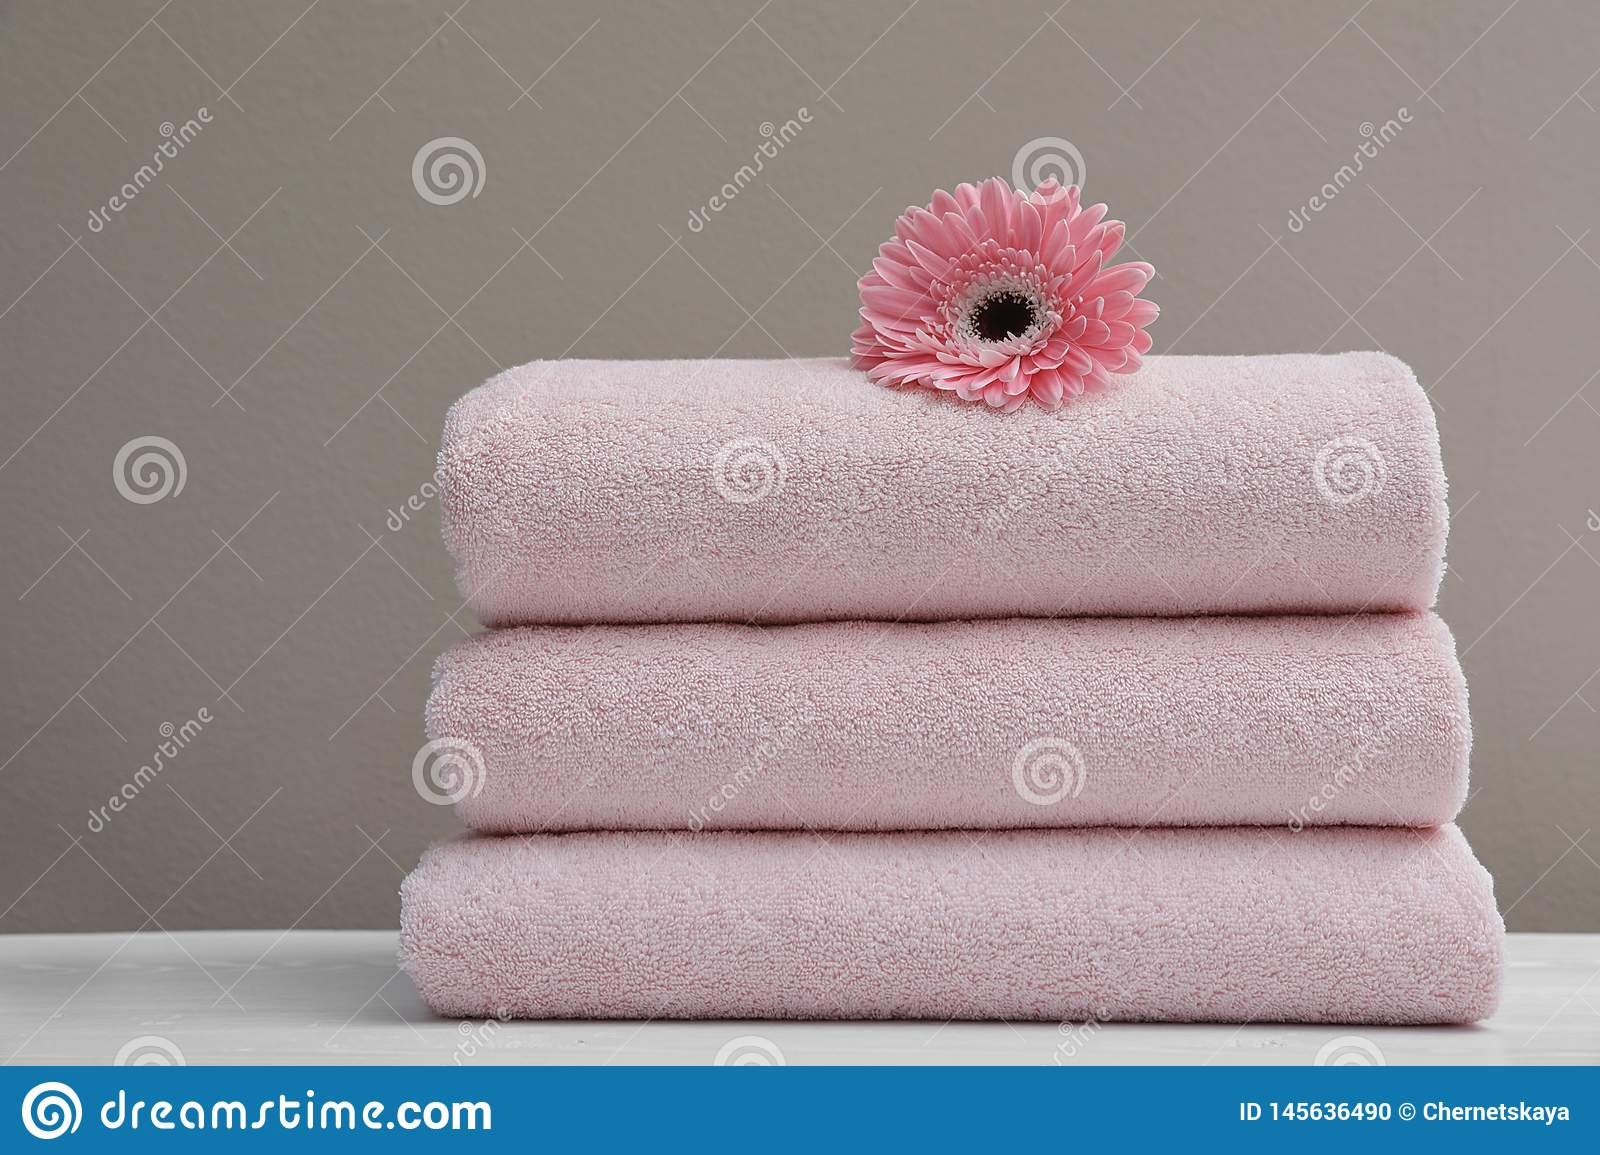 Stack of fresh towels with flower